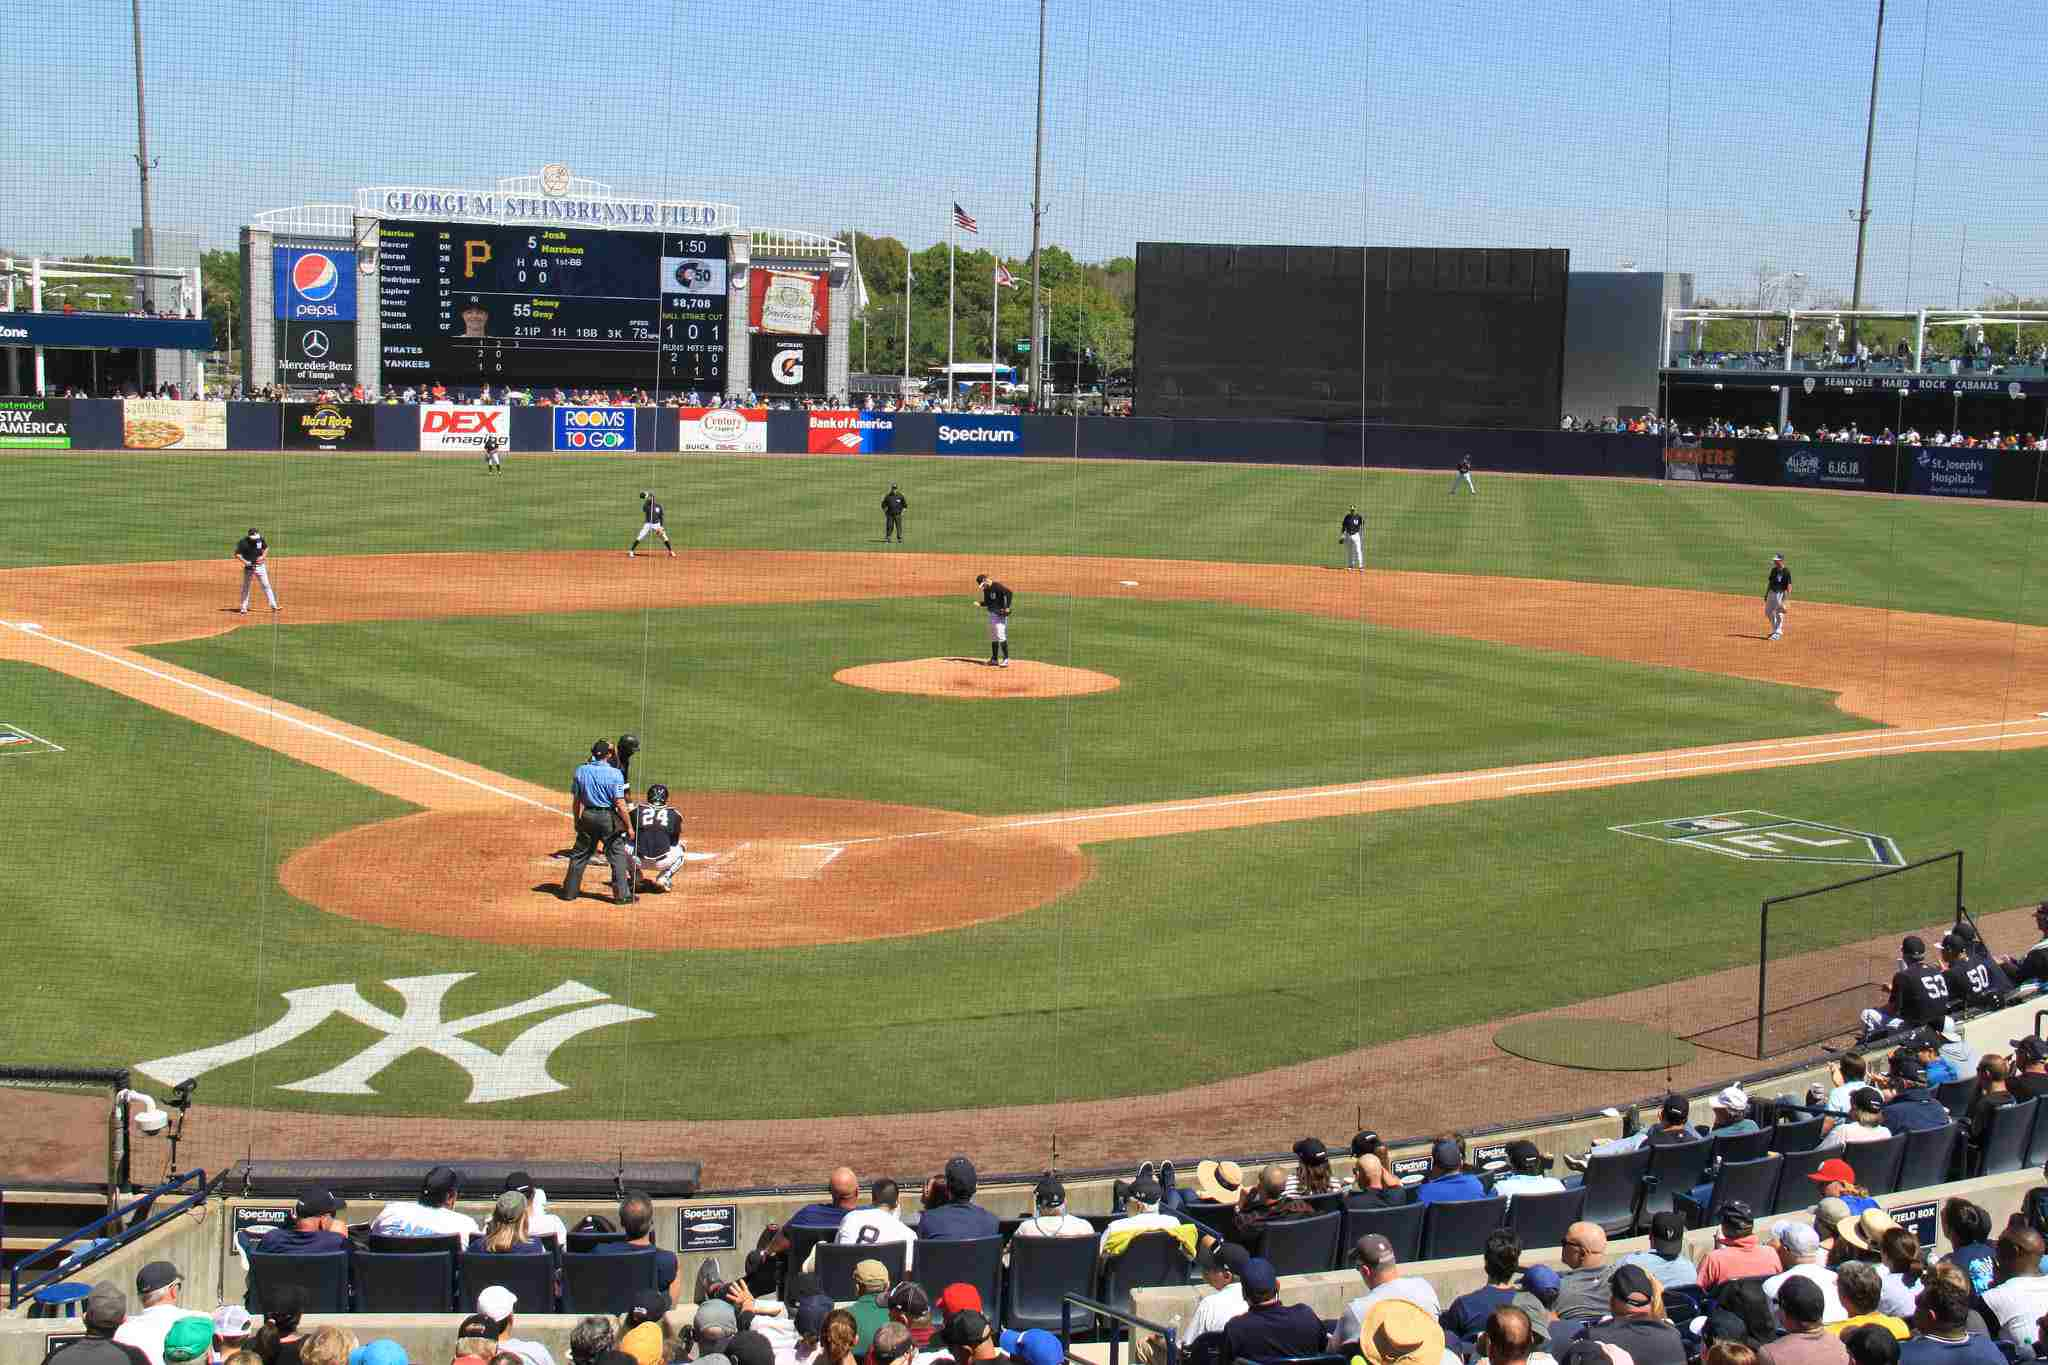 The New York Yankees spring training at George M. Steinbrenner Field in Tampa.